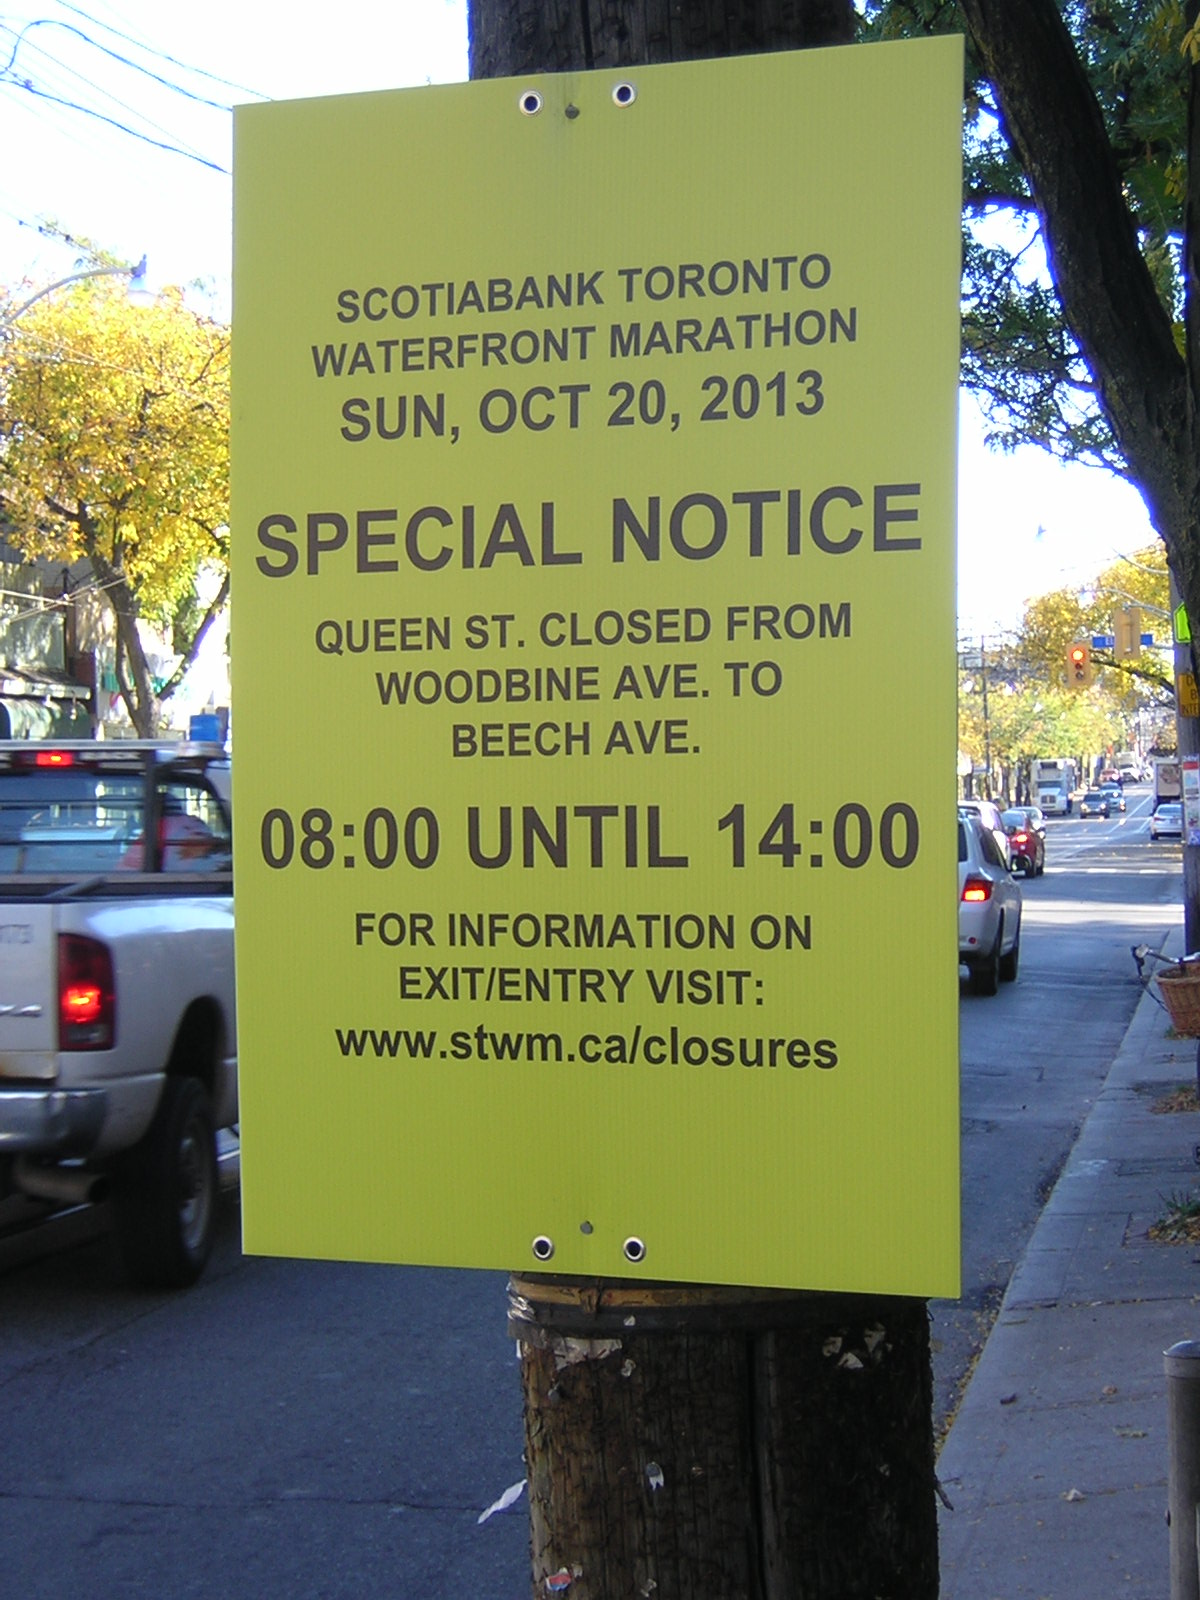 """2013 Scotiabank Toronto Waterfront Marathon Sign"" image by Mike DeHaan"